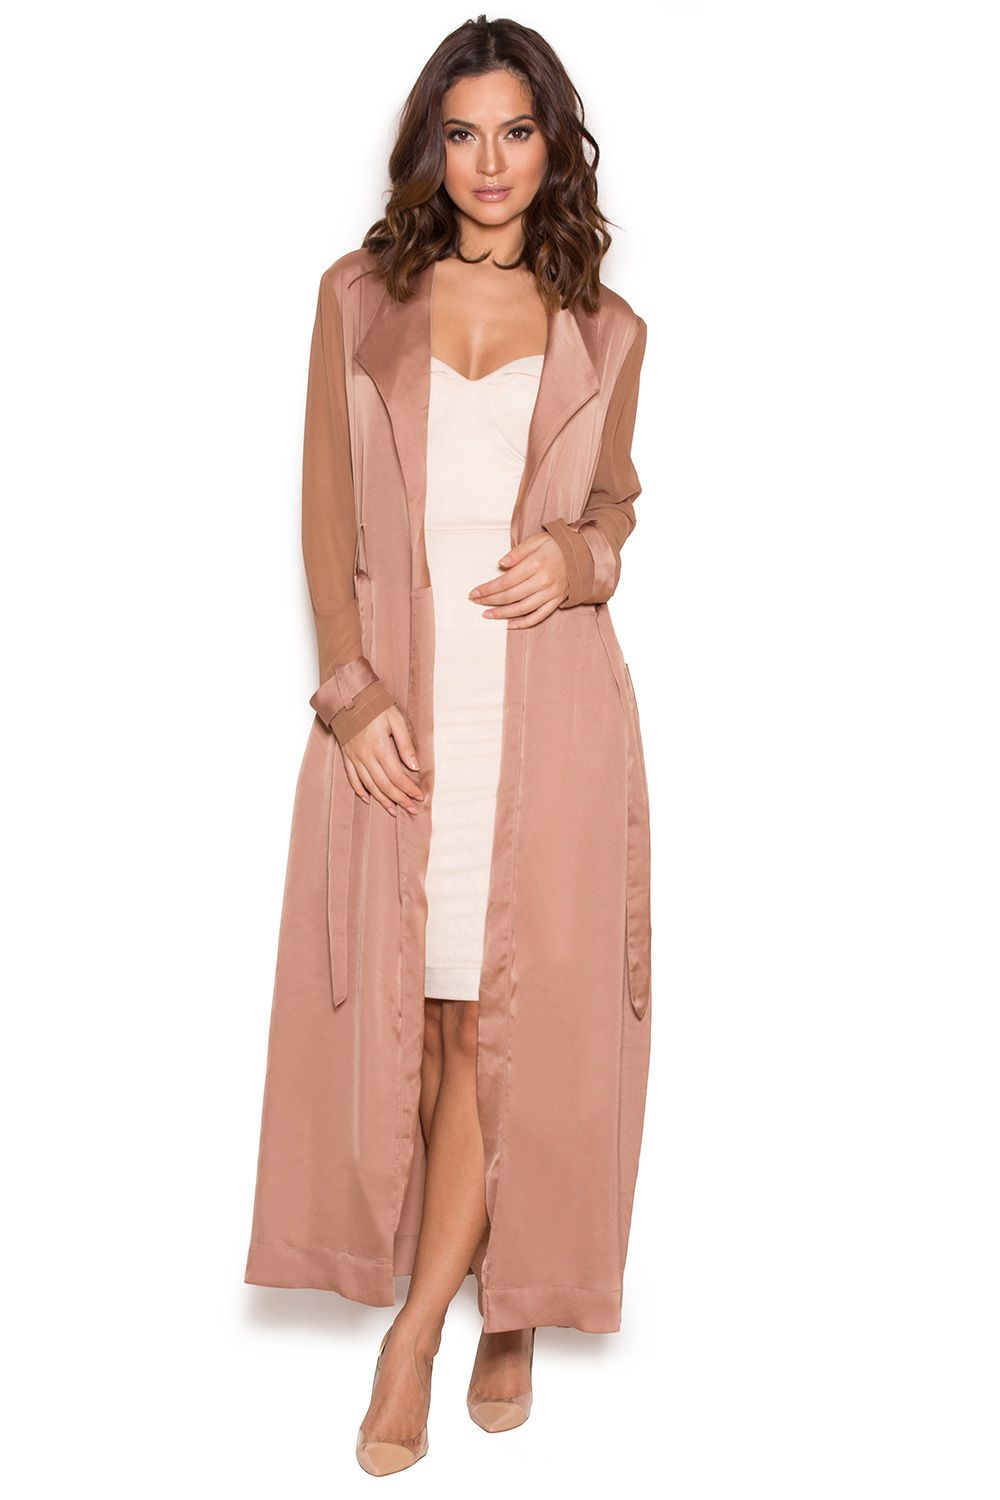 Clothing : Jackets : 'Coryn' Rose Gold Silky Duster Coat | Closet ...